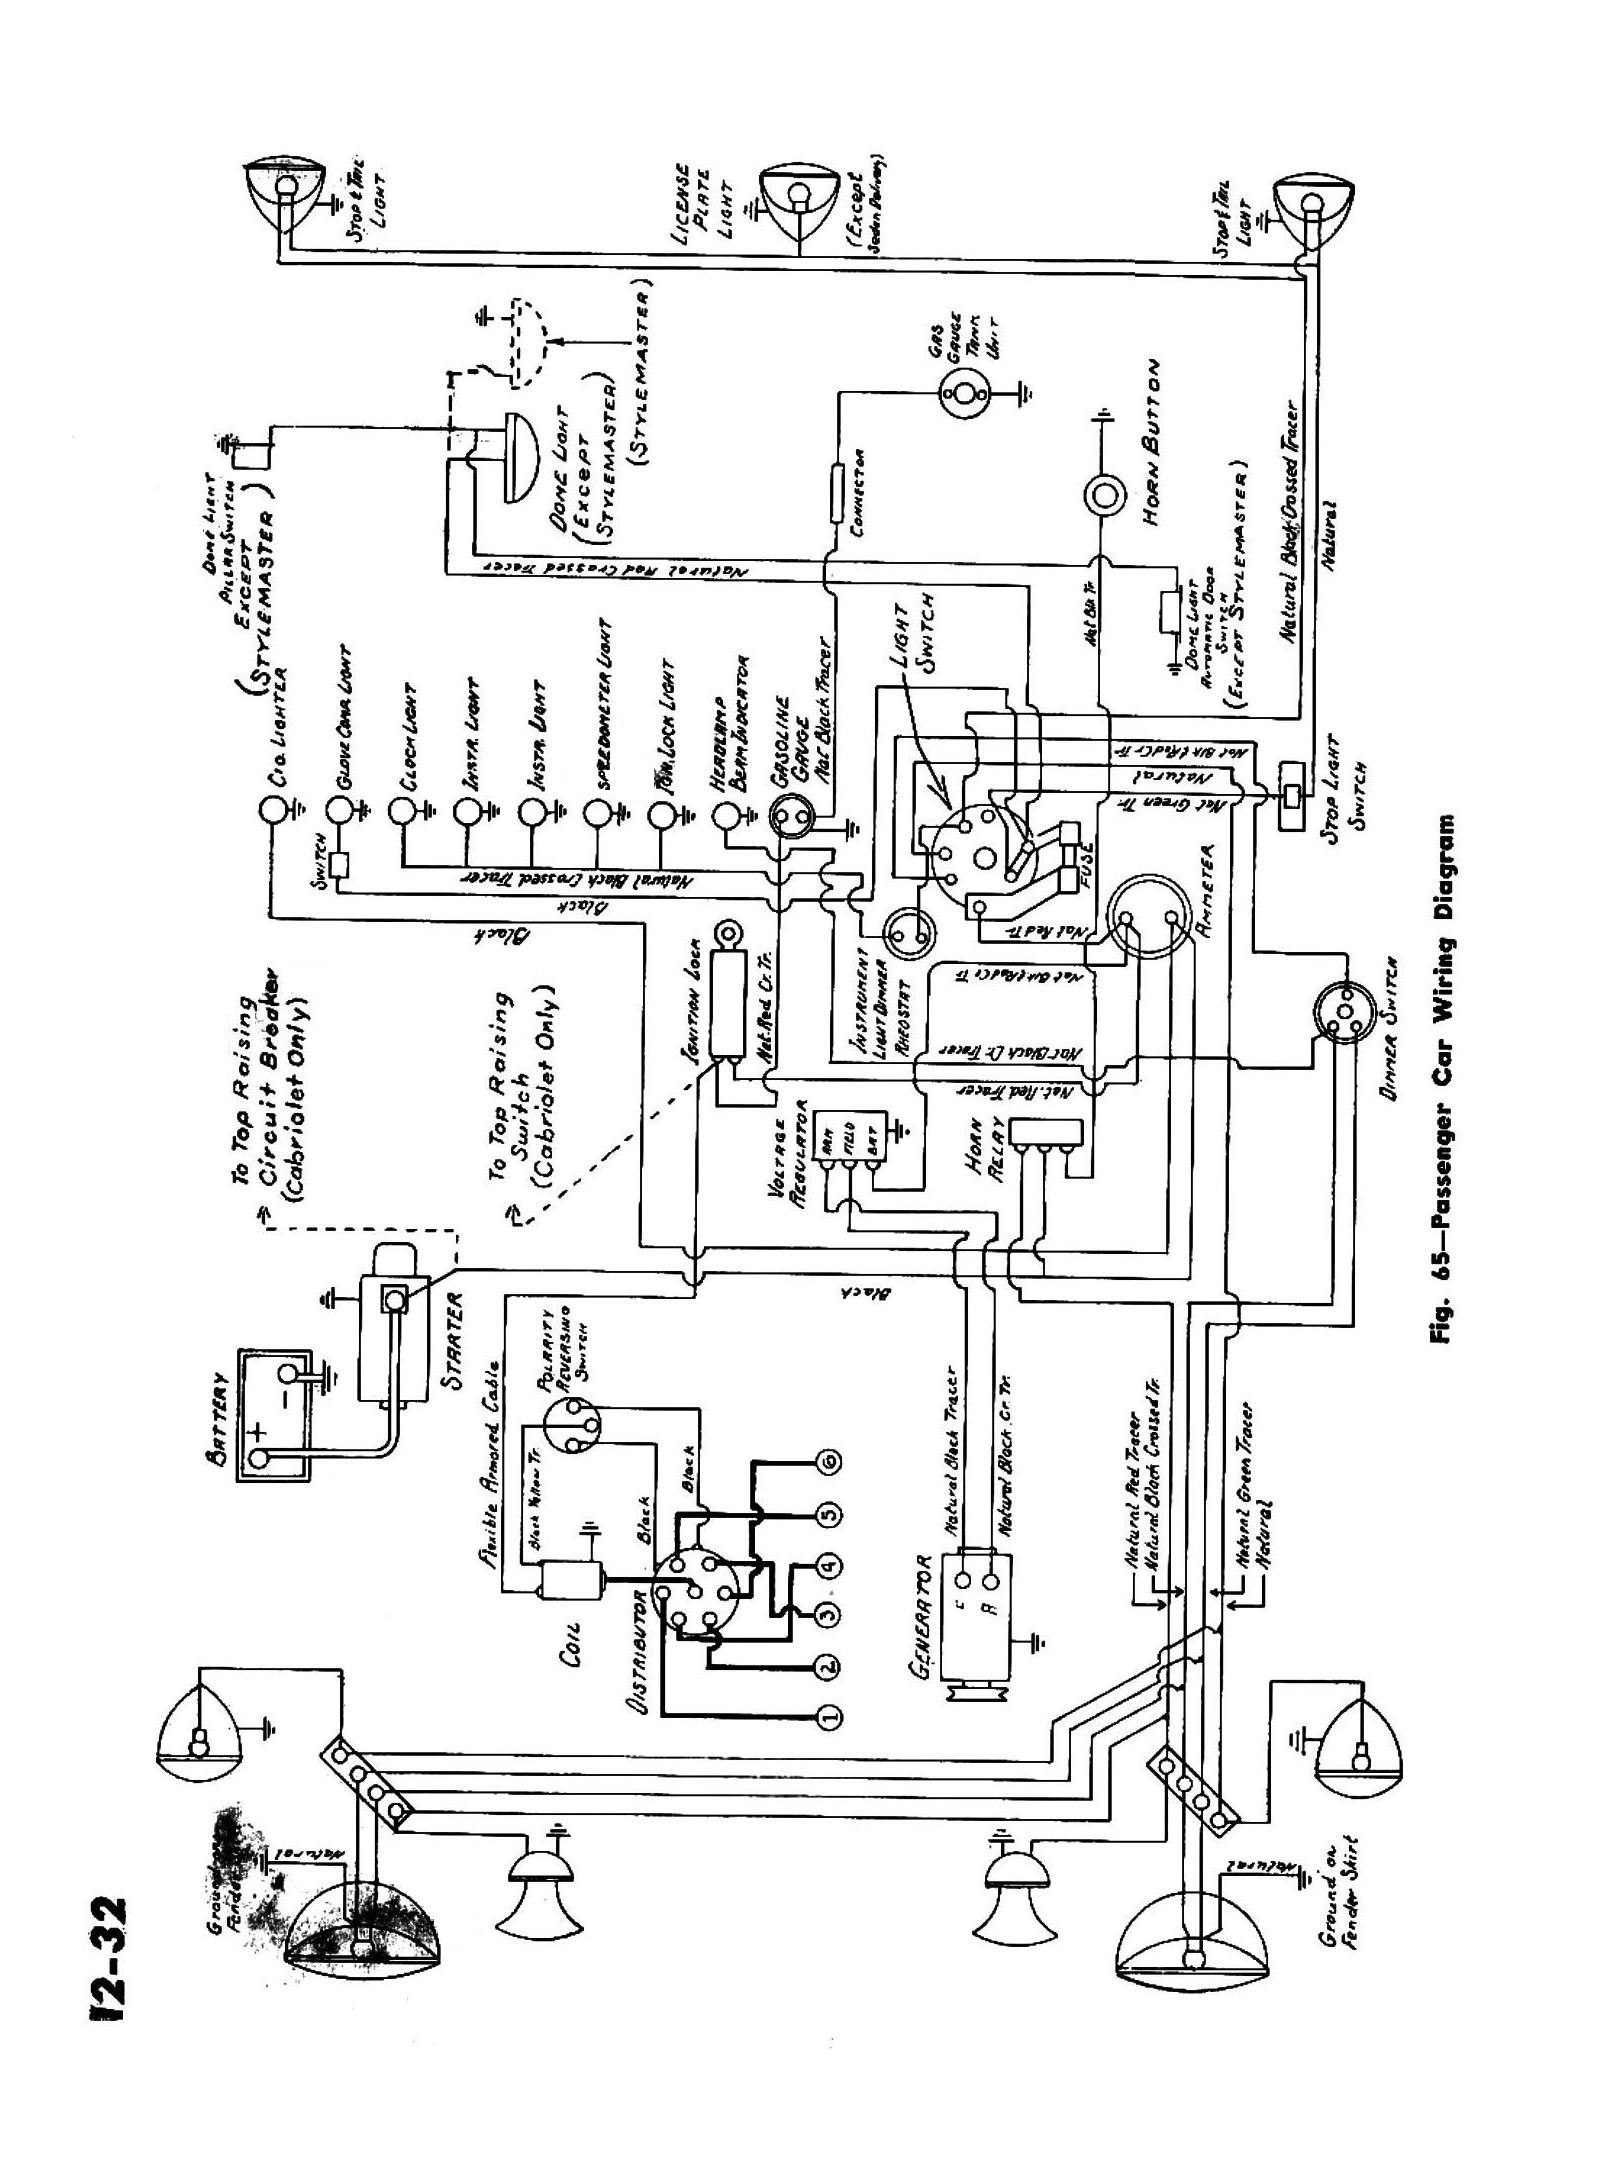 automotive wiring harness with Best Chevy Truck Wiring Diagrams Free on 1992 Chevy Silverado 1500 Wiring Diagram furthermore Honda Gx340 Engine Diagram besides Universal V8 Core Accessory Wiring Harnesses as well Troubleshooting Pto Installation Working Through The Bugs Iii besides Showthread.